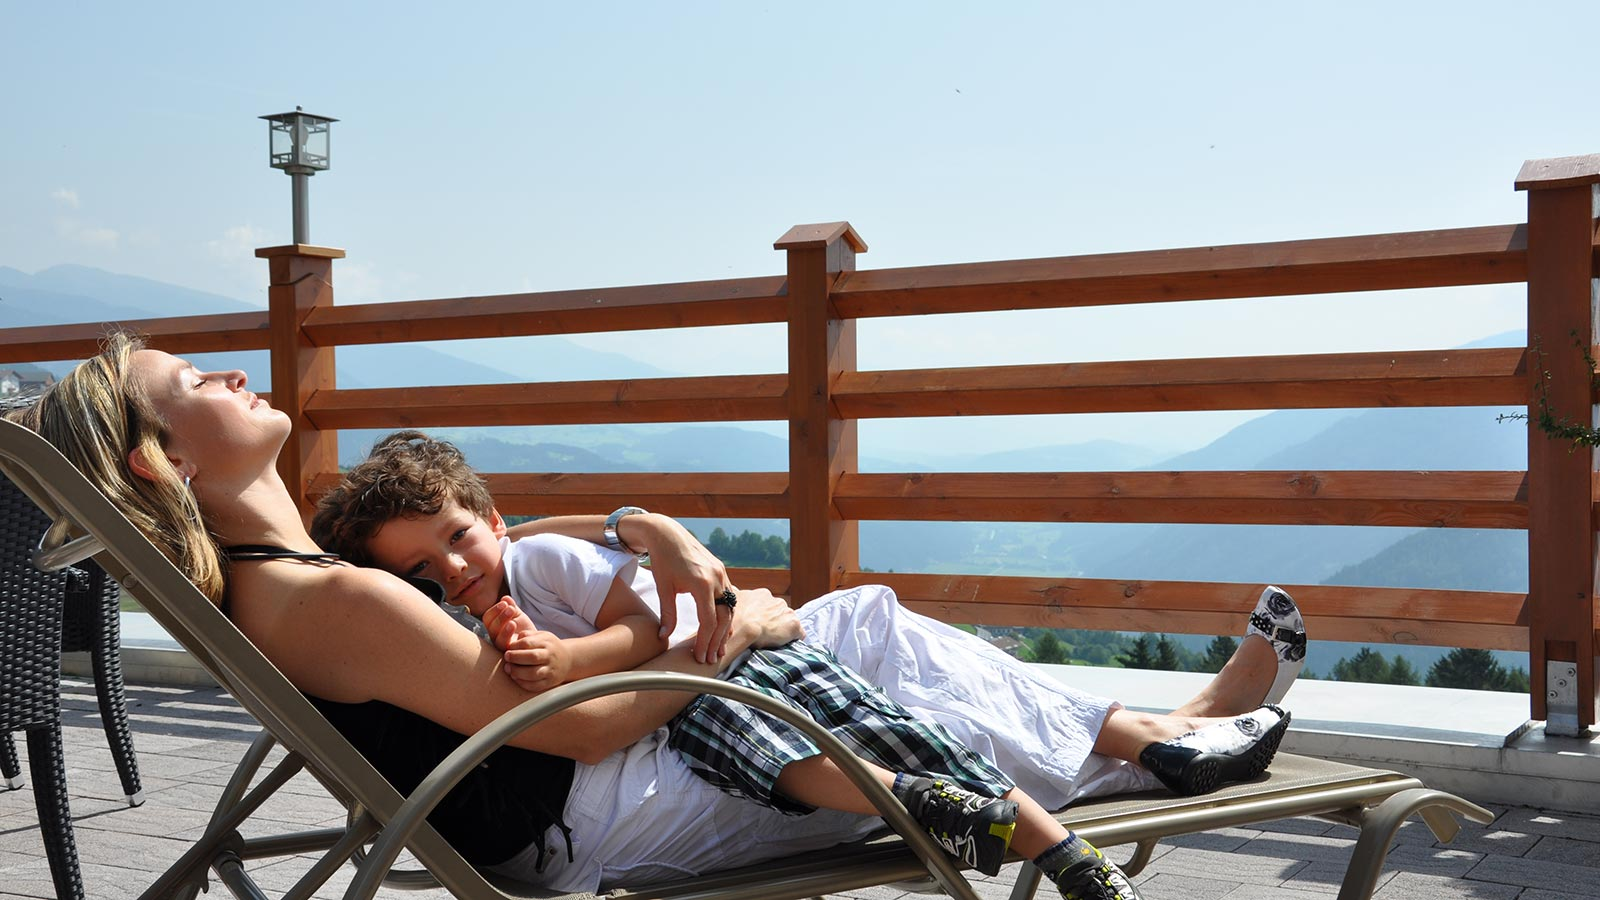 A mother relaxing on a deckchair on the terrace of the Wiesenrain with the son hugging her on a sunny day